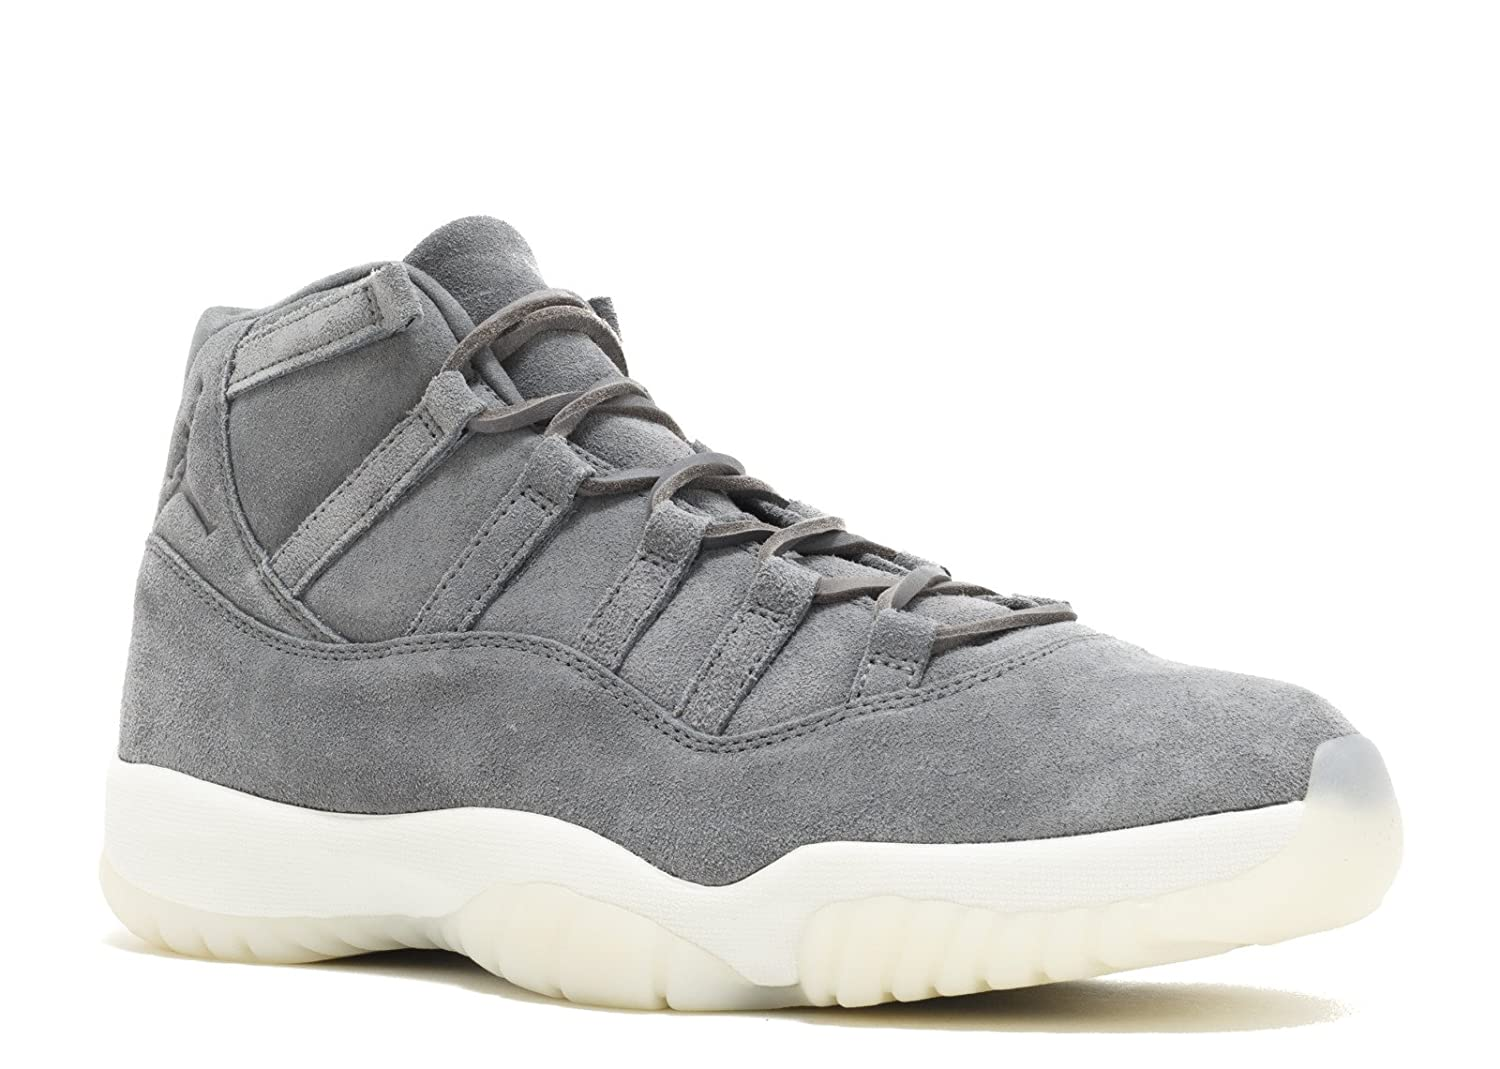 AIR JORDAN - エアジョーダン - AIR JORDAN 11 RETRO PREM 'GREY SUEDE' - SIZE 8 (メンズ) B01NH30R0I